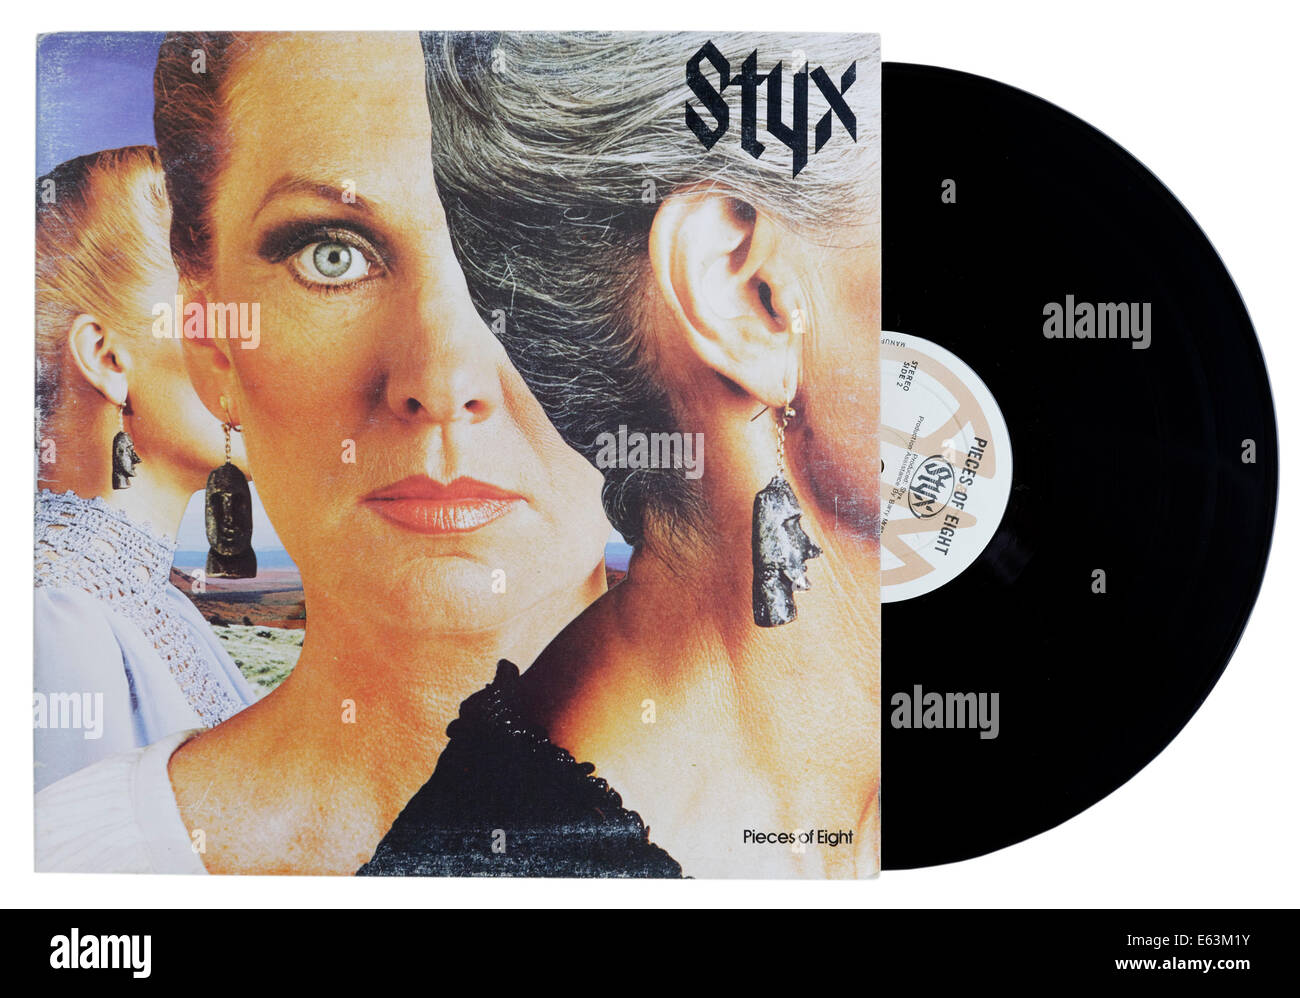 Pieces of Eight by Styx - Stock Image